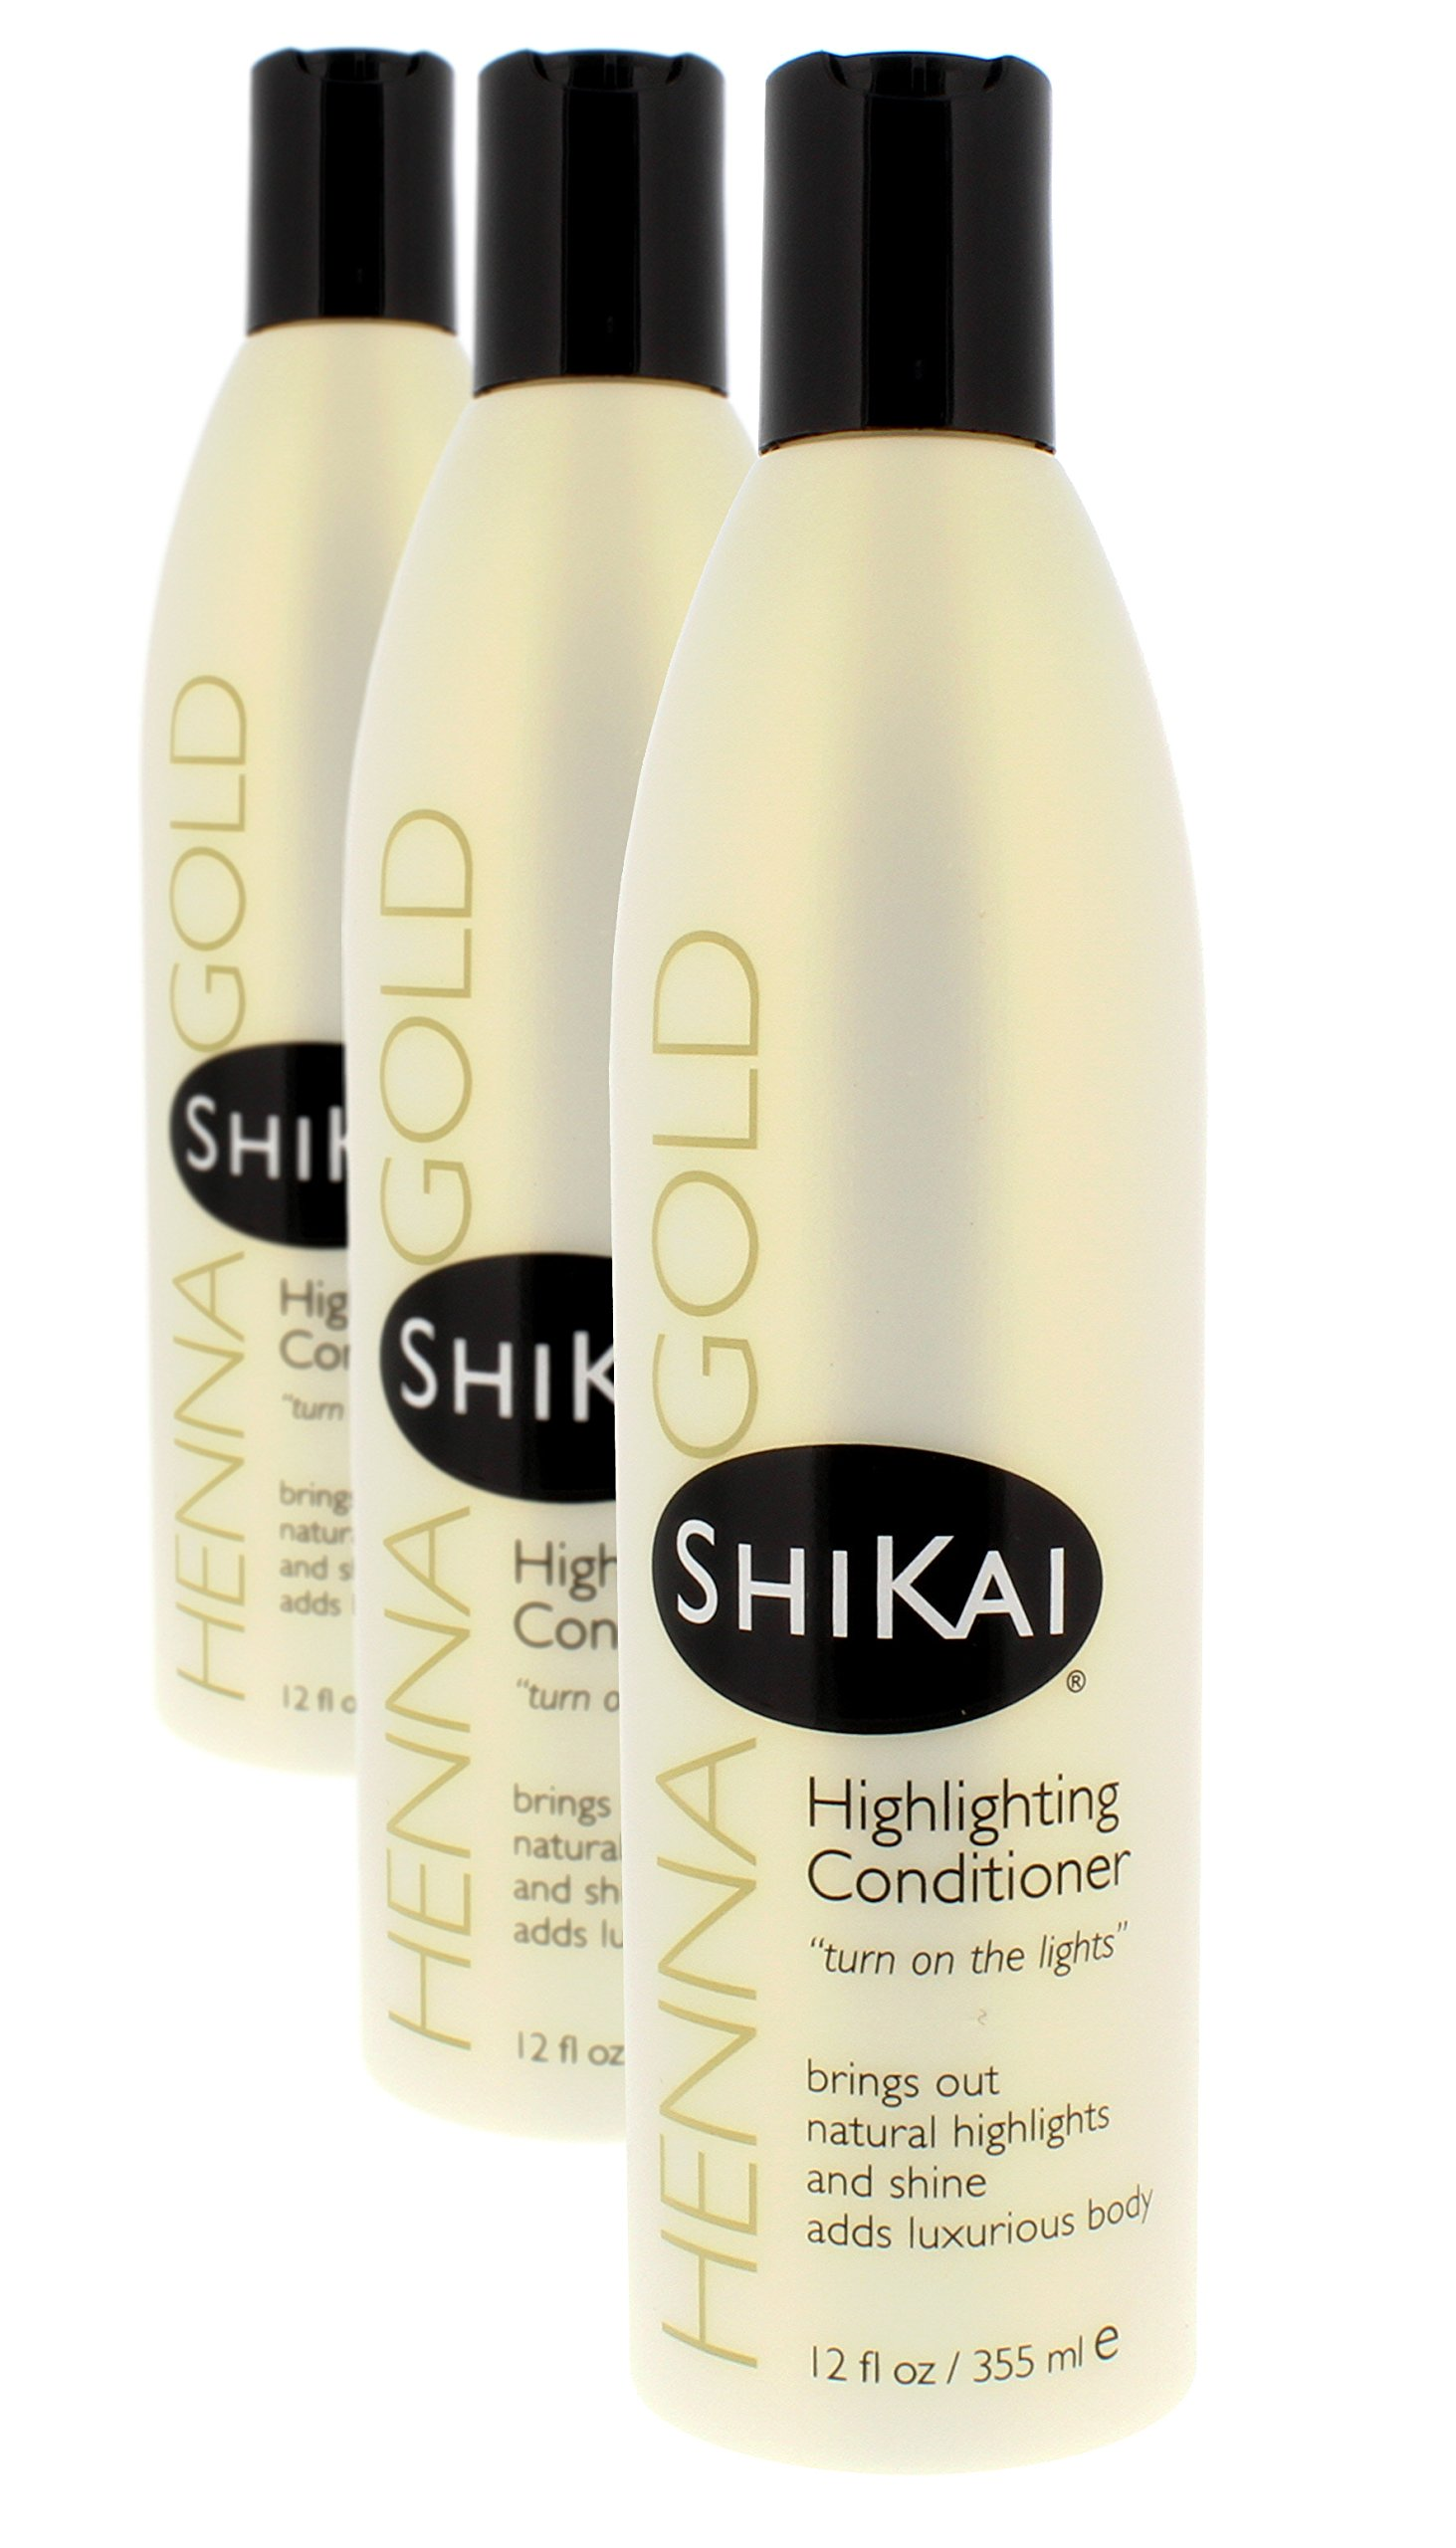 Shikai - Henna Gold Highlighting Conditioner, Brings Out Natural Highlights & Shine, Adds Luxurious Body, Plant-Based Formula with Non-Coloring Henna (Natural Fragrance, 12 fl oz, Pack of 3) by ShiKai